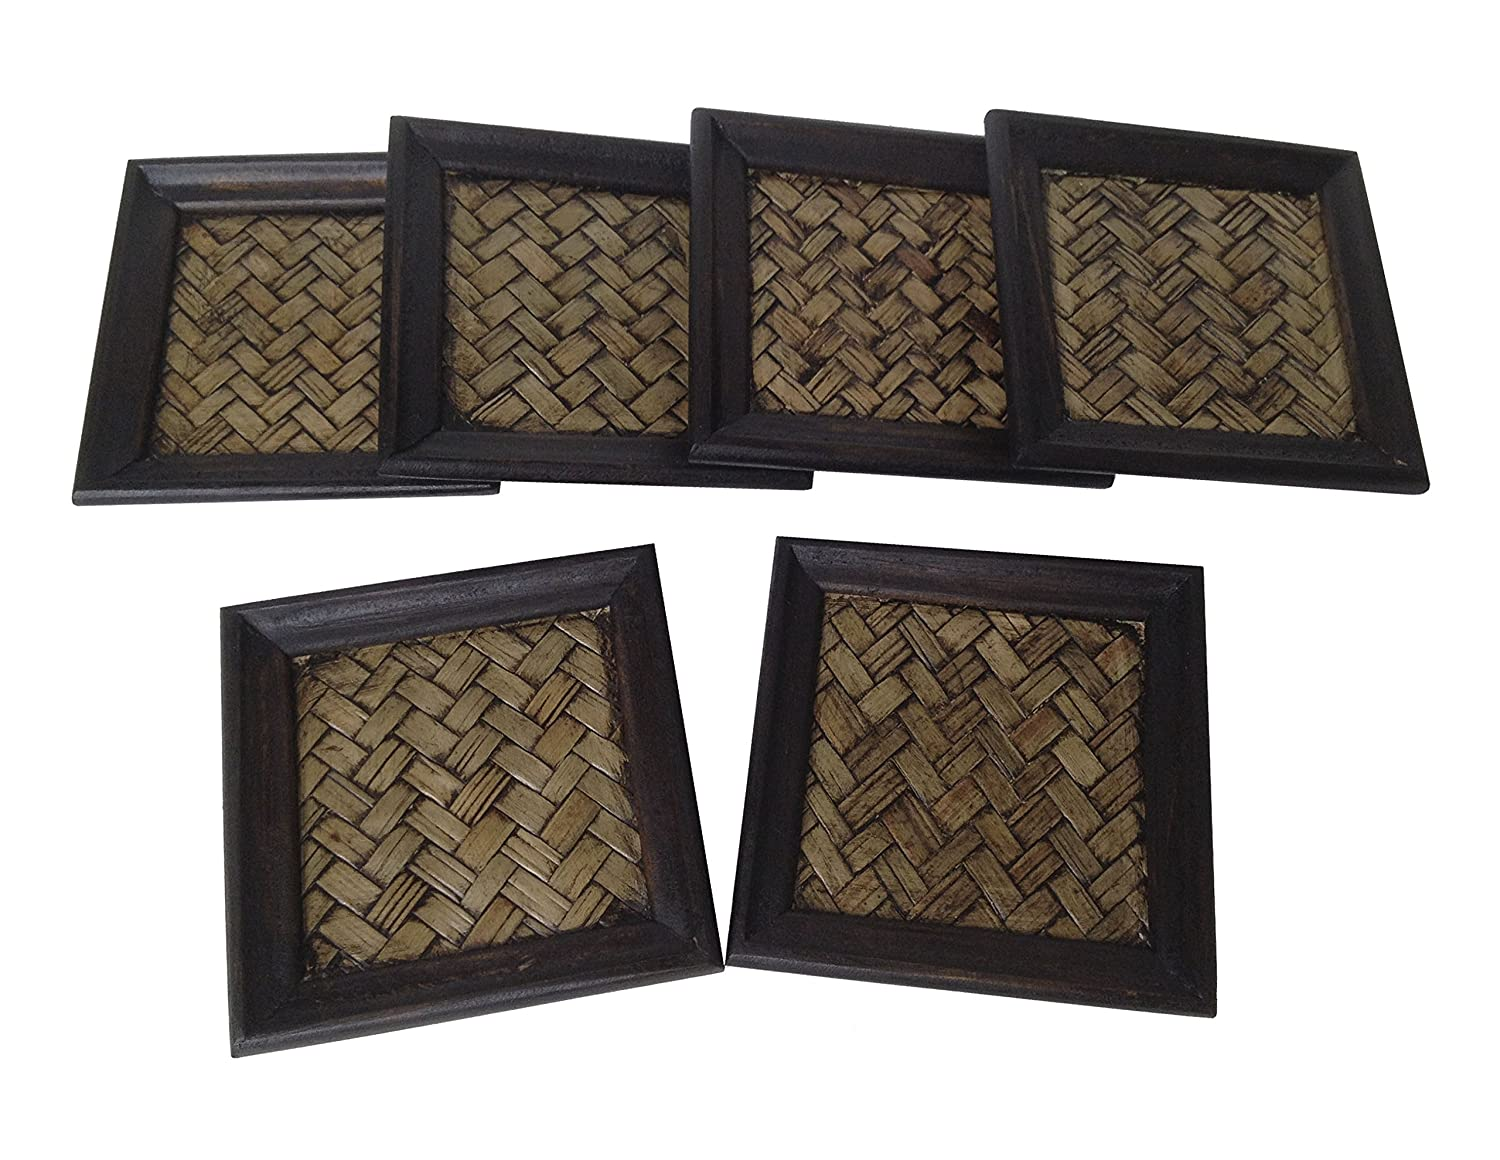 Wood For Décor Wooden Square Style Décor Elephant Saucer Mango With Bamboo Woven Small Dark Brown Oak Set of 6 pieces Wood For Décor